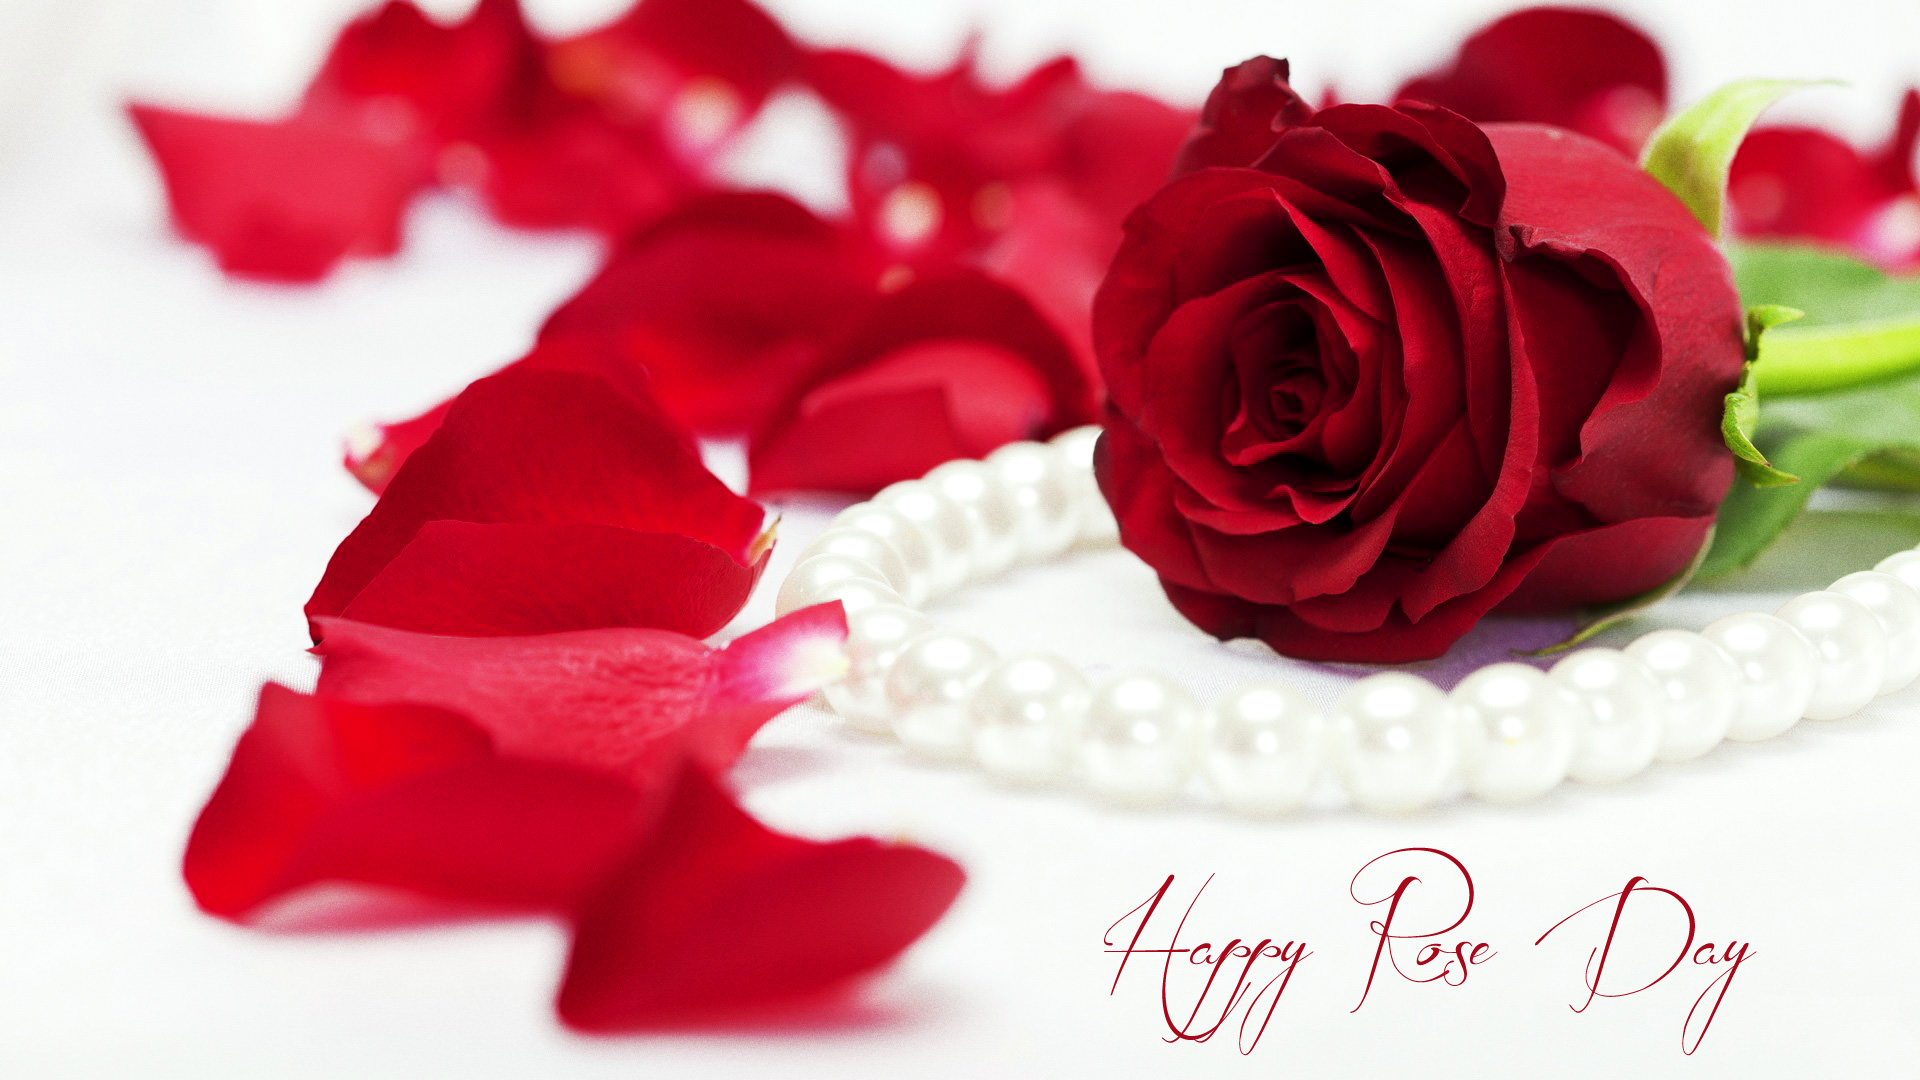 Single Rose Wallpaper for 1st day of Valentine Week